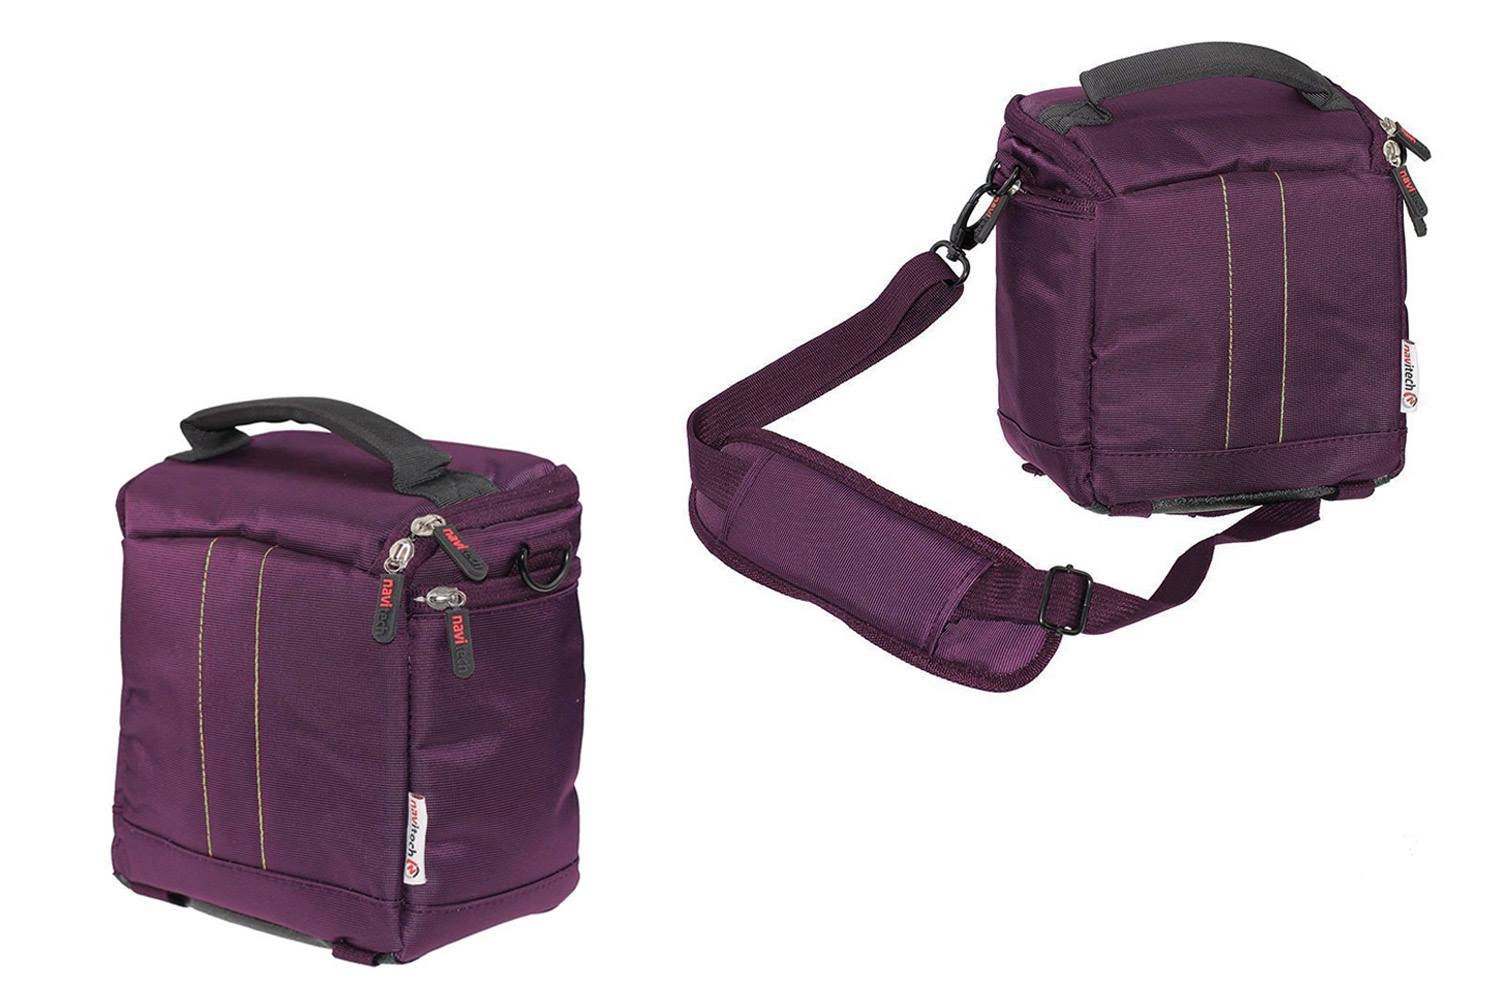 Navitech Purple Protective Portable Projector Carrying Case and Travel Bag for theAAXA M5 Mini Portable Business Projector